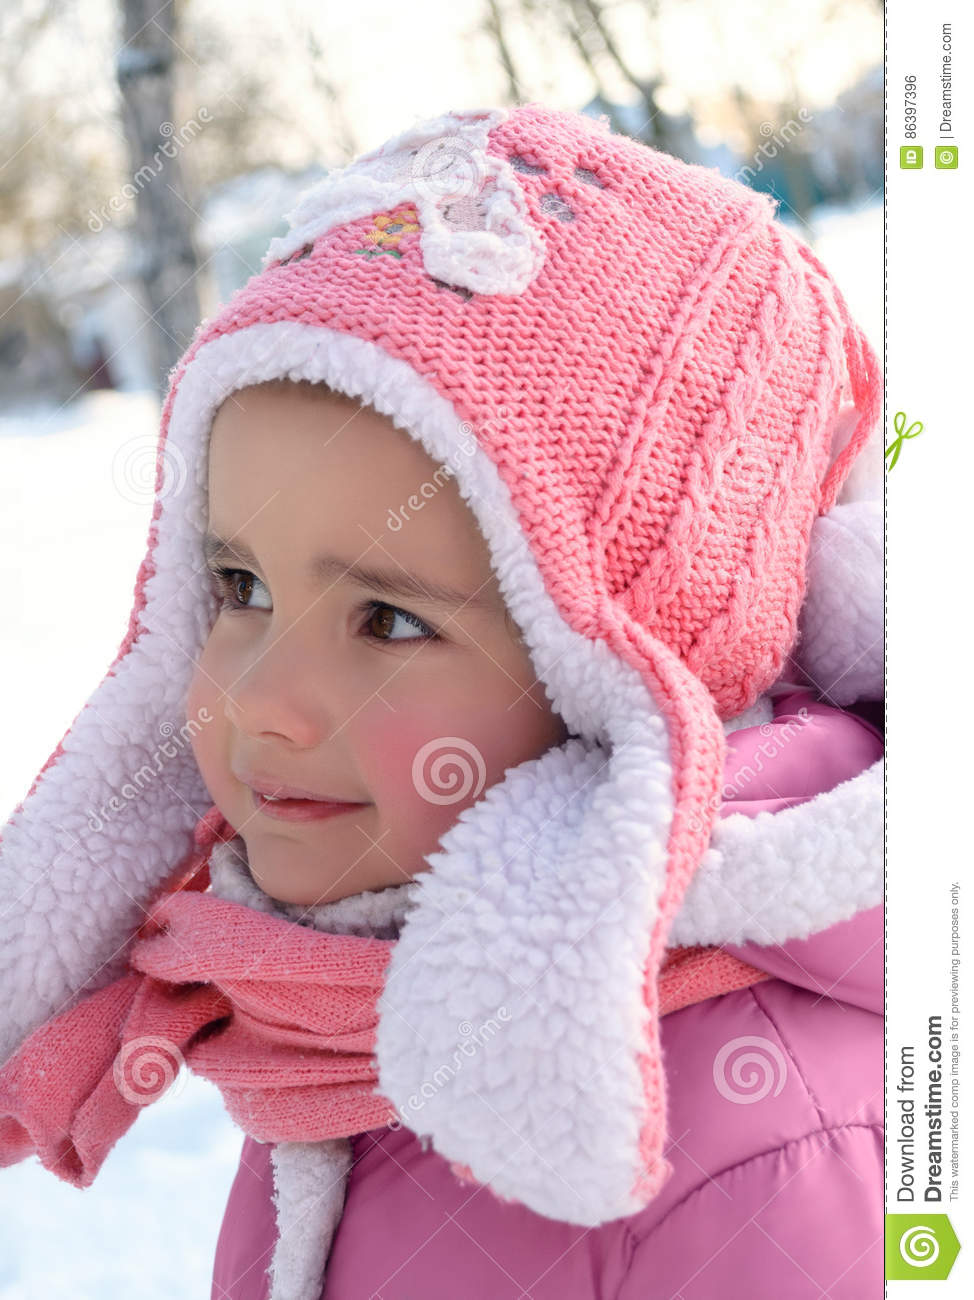 58033b3f4 Cute Little Girl Enjoying Winter And Snow Dressed In Warm Pink C ...